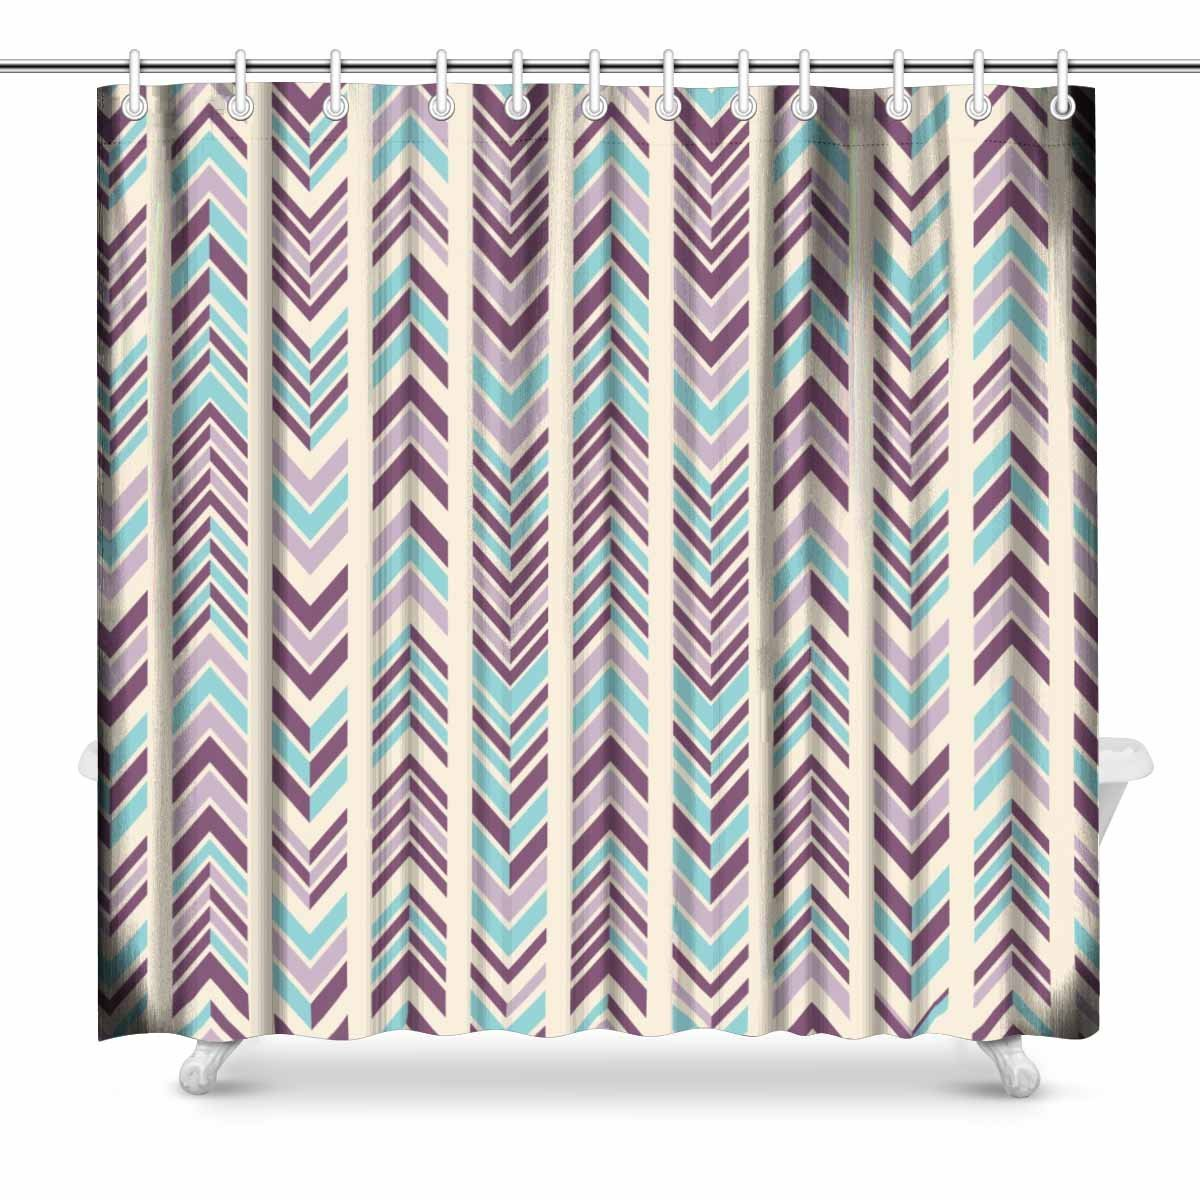 Aplysia Abstract Modern Chevron Pattern In Bright Colors Art Decor